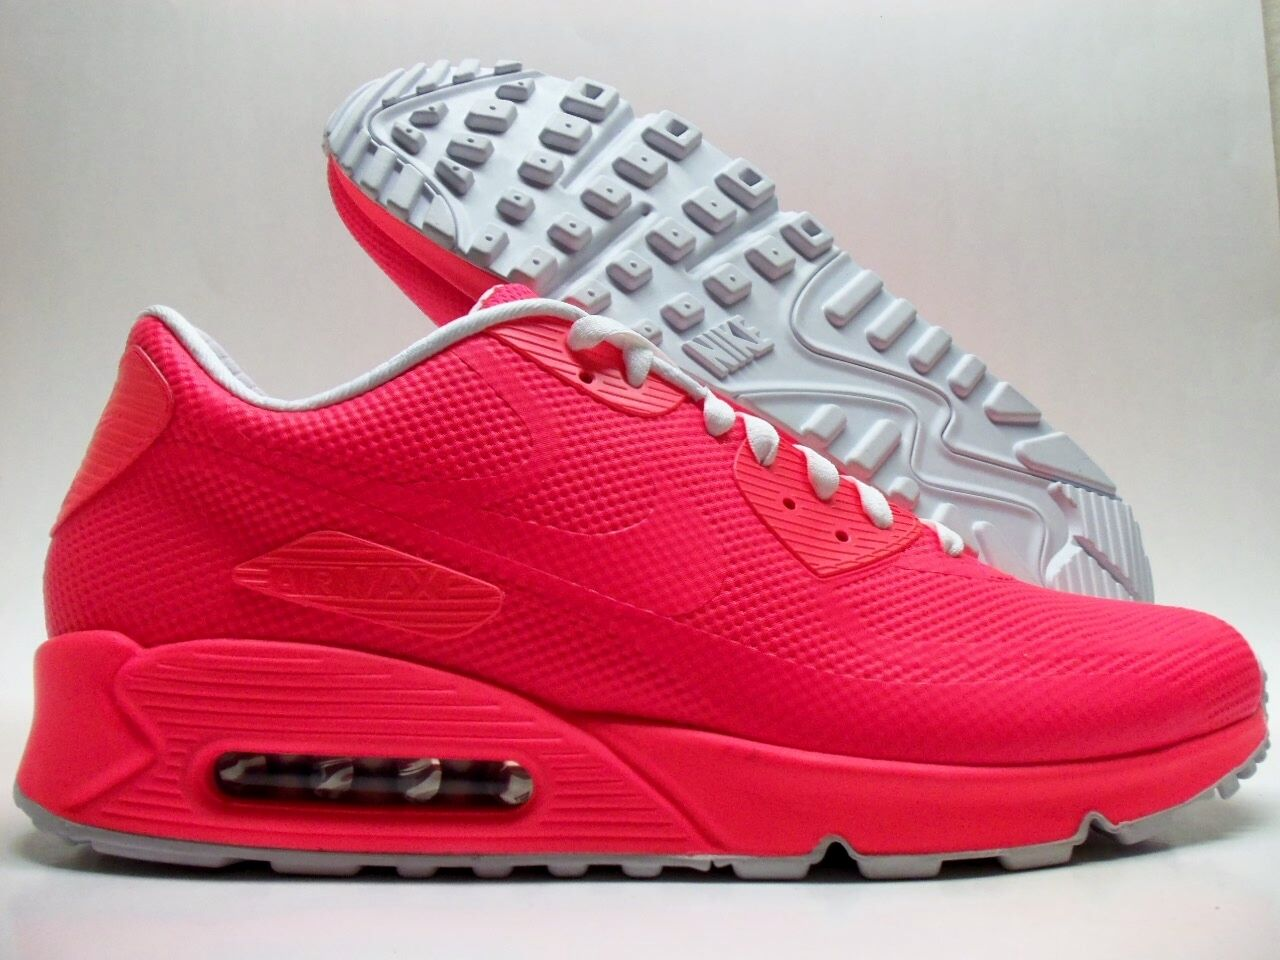 NIKE AIR MAX 90 HYPERFUSE PREMIUM ID SOLAR RED-WHITE SIZE MEN'S 13 Price reduction Special limited time